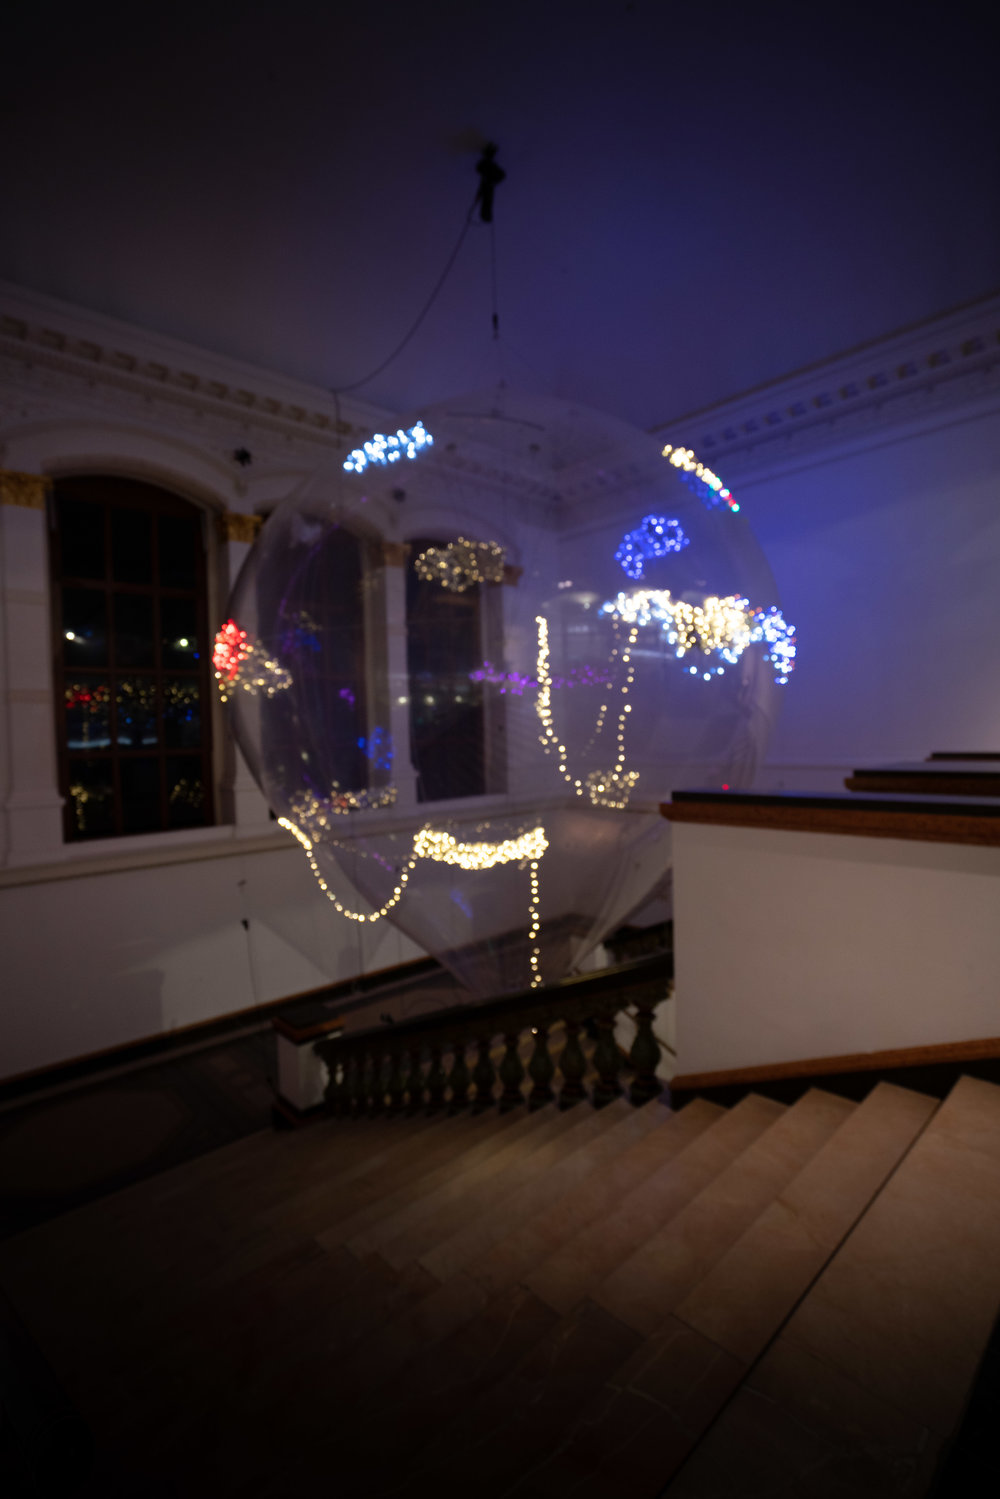 181117_Lee Bul_Crash, Martin-Gropius-Bau_16.jpg